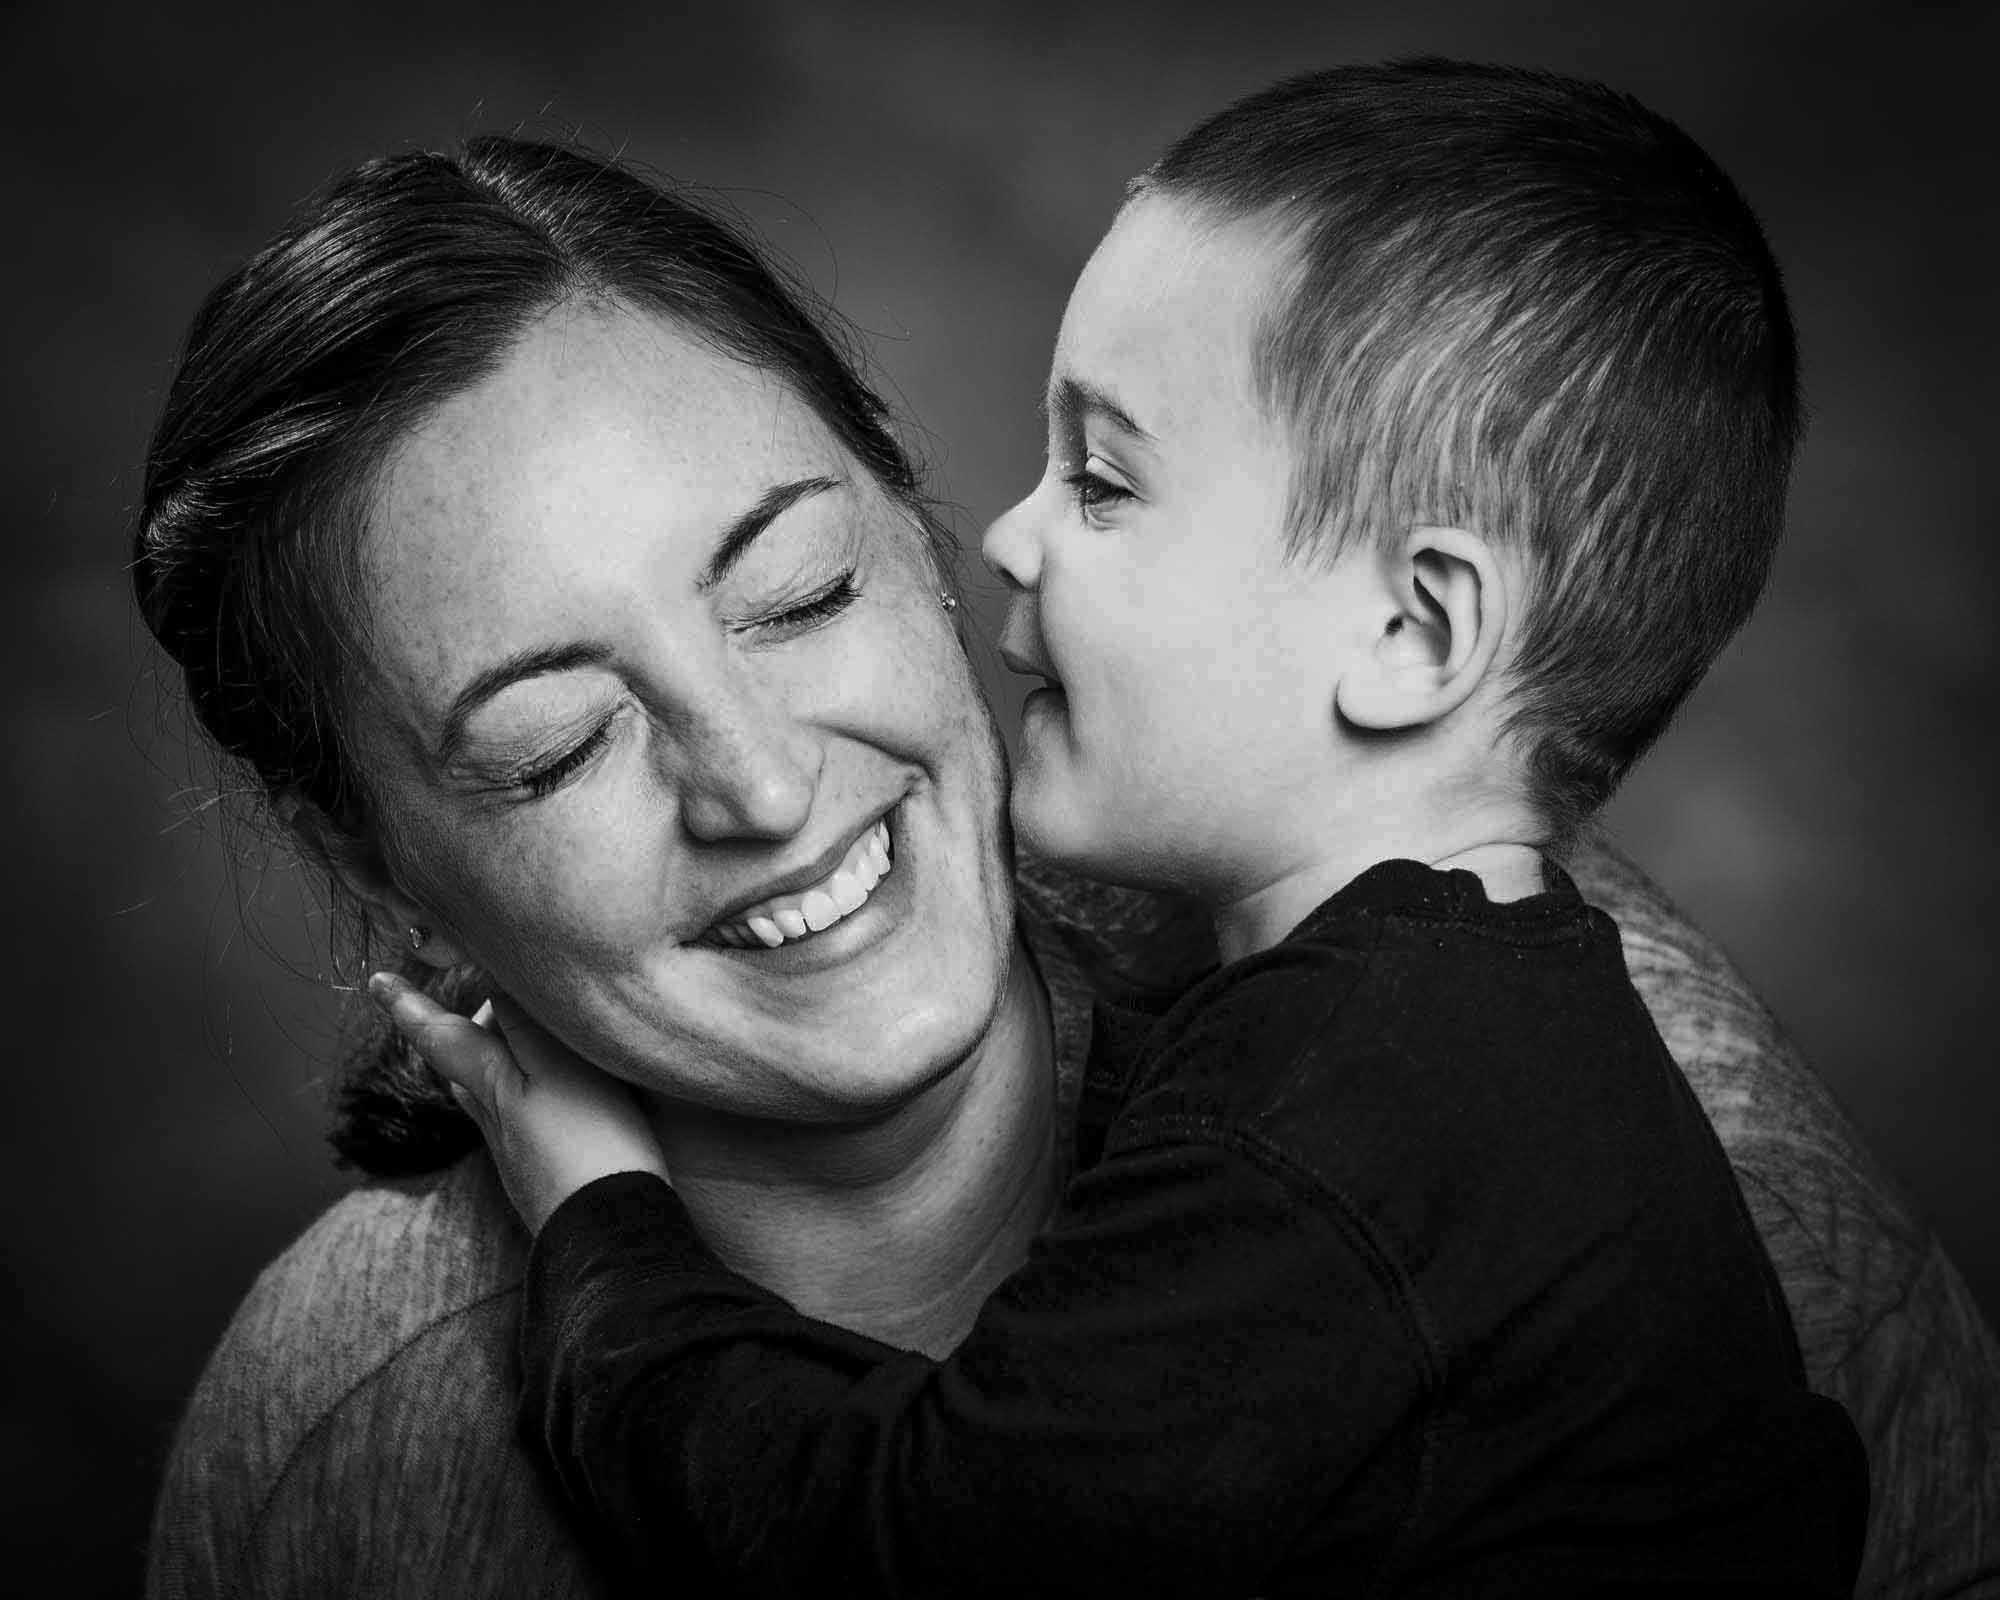 Commercial Portrait Photography: Flashes of Hope-Philadelphia: Zave Smith